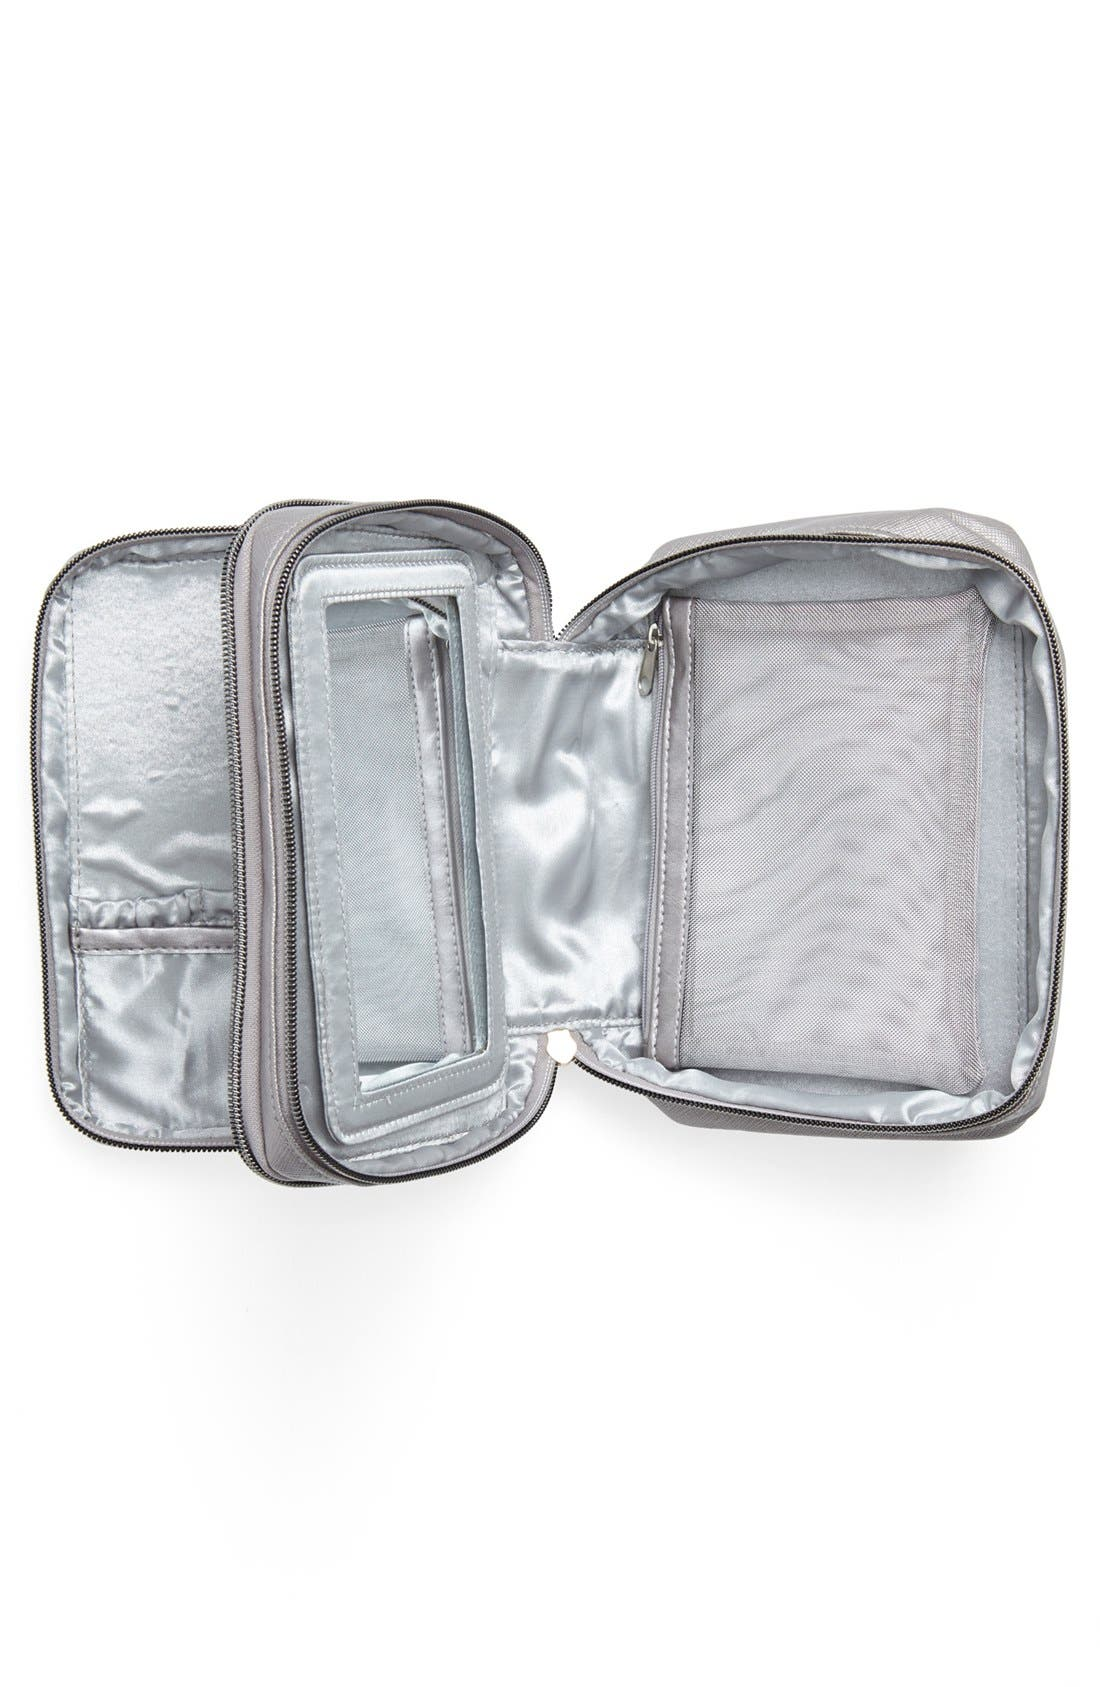 Deluxe Mirrored Cosmetics Bag,                             Alternate thumbnail 3, color,                             000